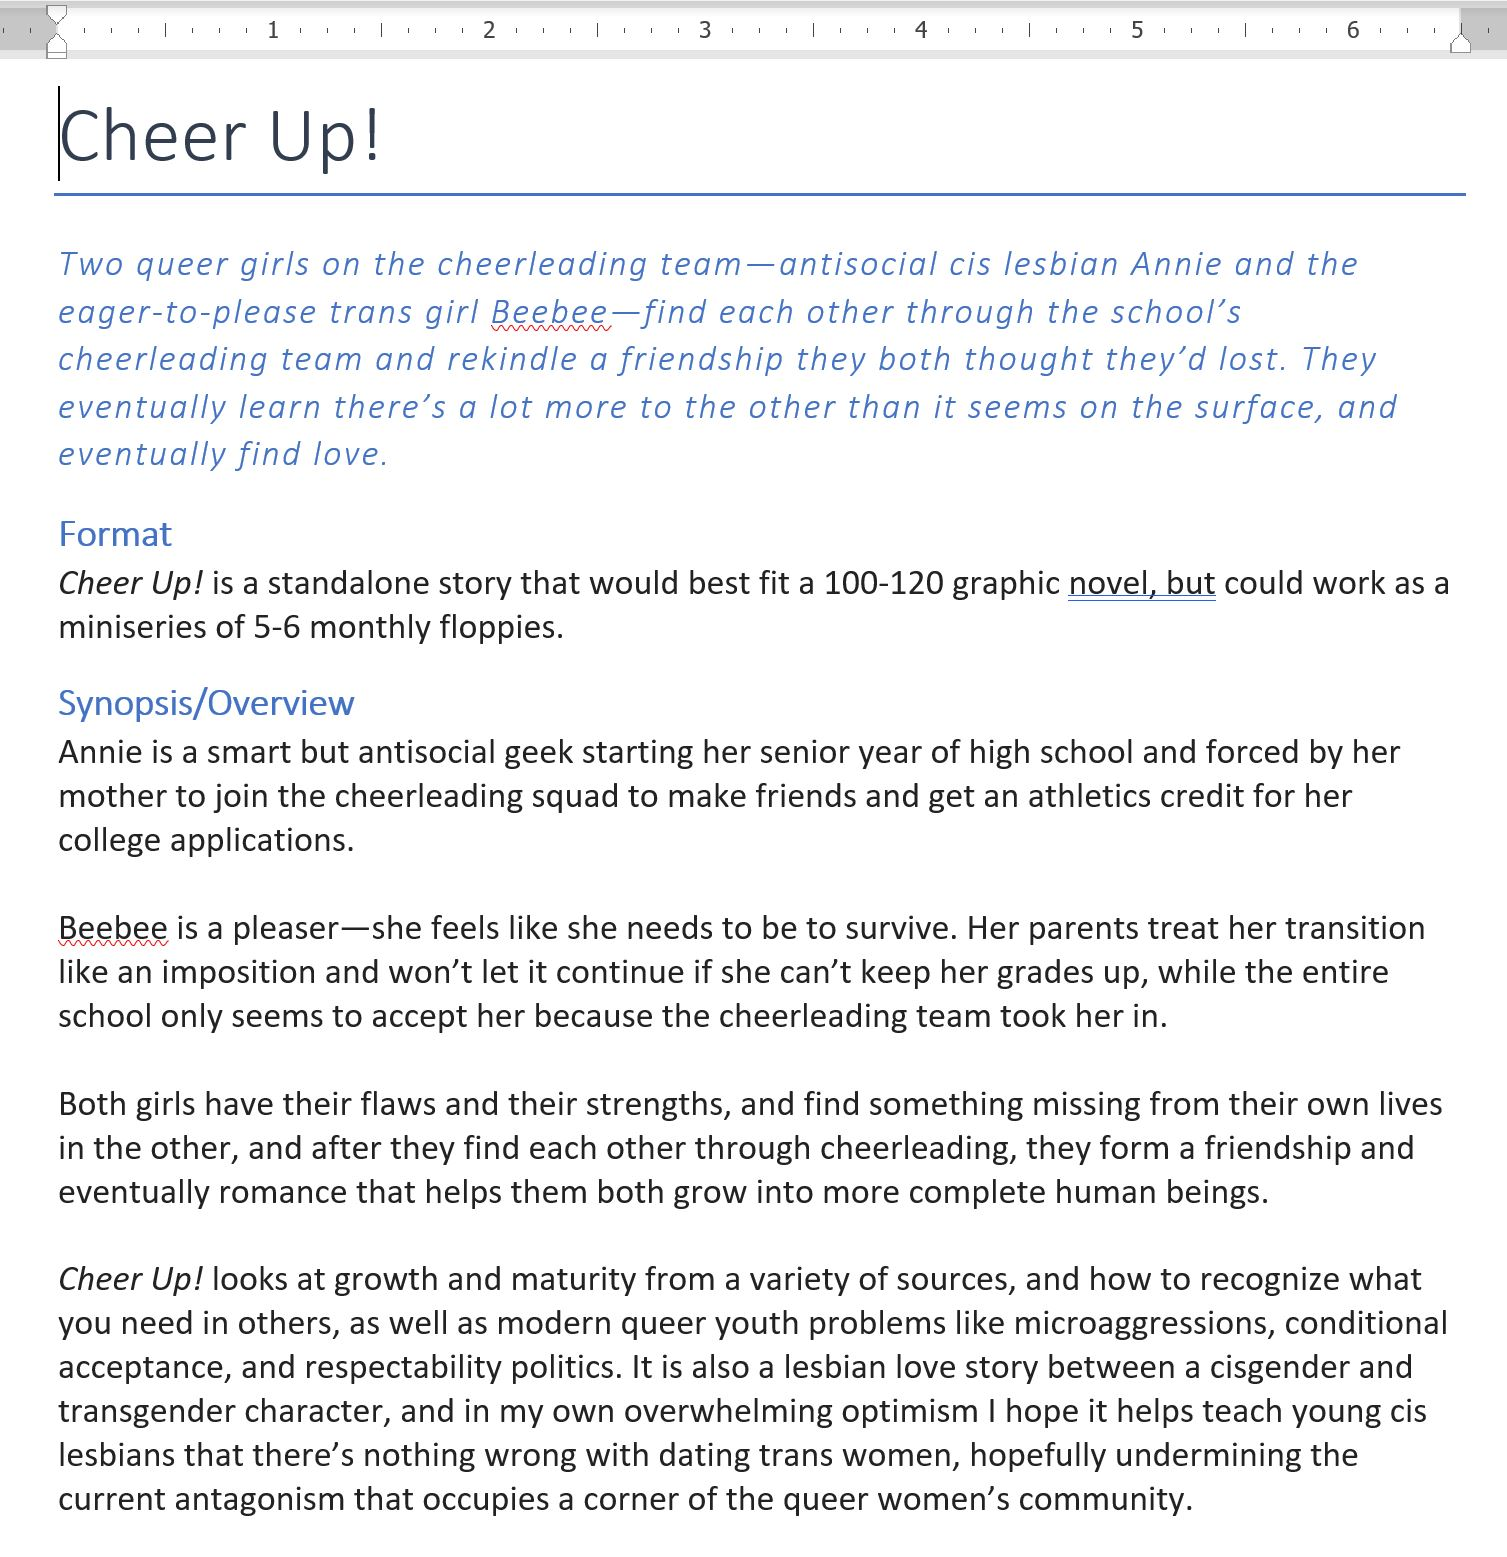 Cheer Up! Two queer girls on the cheerleading team—antisocial cis lesbian Annie and the eager-to-please trans girl Beebee—find each other through the school's cheerleading team and rekindle a friendship they both thought they'd lost. They eventually learn there's a lot more to the other than it seems on the surface, and eventually find love. Format Cheer Up! is a standalone story that would best fit a 100-120 graphic novel, but could work as a miniseries of 5-6 monthly floppies.  Synopsis/Overview Annie is a smart but antisocial geek starting her senior year of high school and forced by her mother to join the cheerleading squad to make friends and get an athletics credit for her college applications.  Beebee is a pleaser—she feels like she needs to be to survive. Her parents treat her transition like an imposition and won't let it continue if she can't keep her grades up, while the entire school only seems to accept her because the cheerleading team took her in.  Both girls have their flaws and their strengths, and find something missing from their own lives in the other, and after they find each other through cheerleading, they form a friendship and eventually romance that helps them both grow into more complete human beings.  Cheer Up! looks at growth and maturity from a variety of sources, and how to recognize what you need in others, as well as modern queer youth problems like microaggressions, conditional acceptance, and respectability politics. It is also a lesbian love story between a cisgender and transgender character, and in my own overwhelming optimism I hope it helps teach young cis lesbians that there's nothing wrong with dating trans women, hopefully undermining the current antagonism that occupies a corner of the queer women's community.